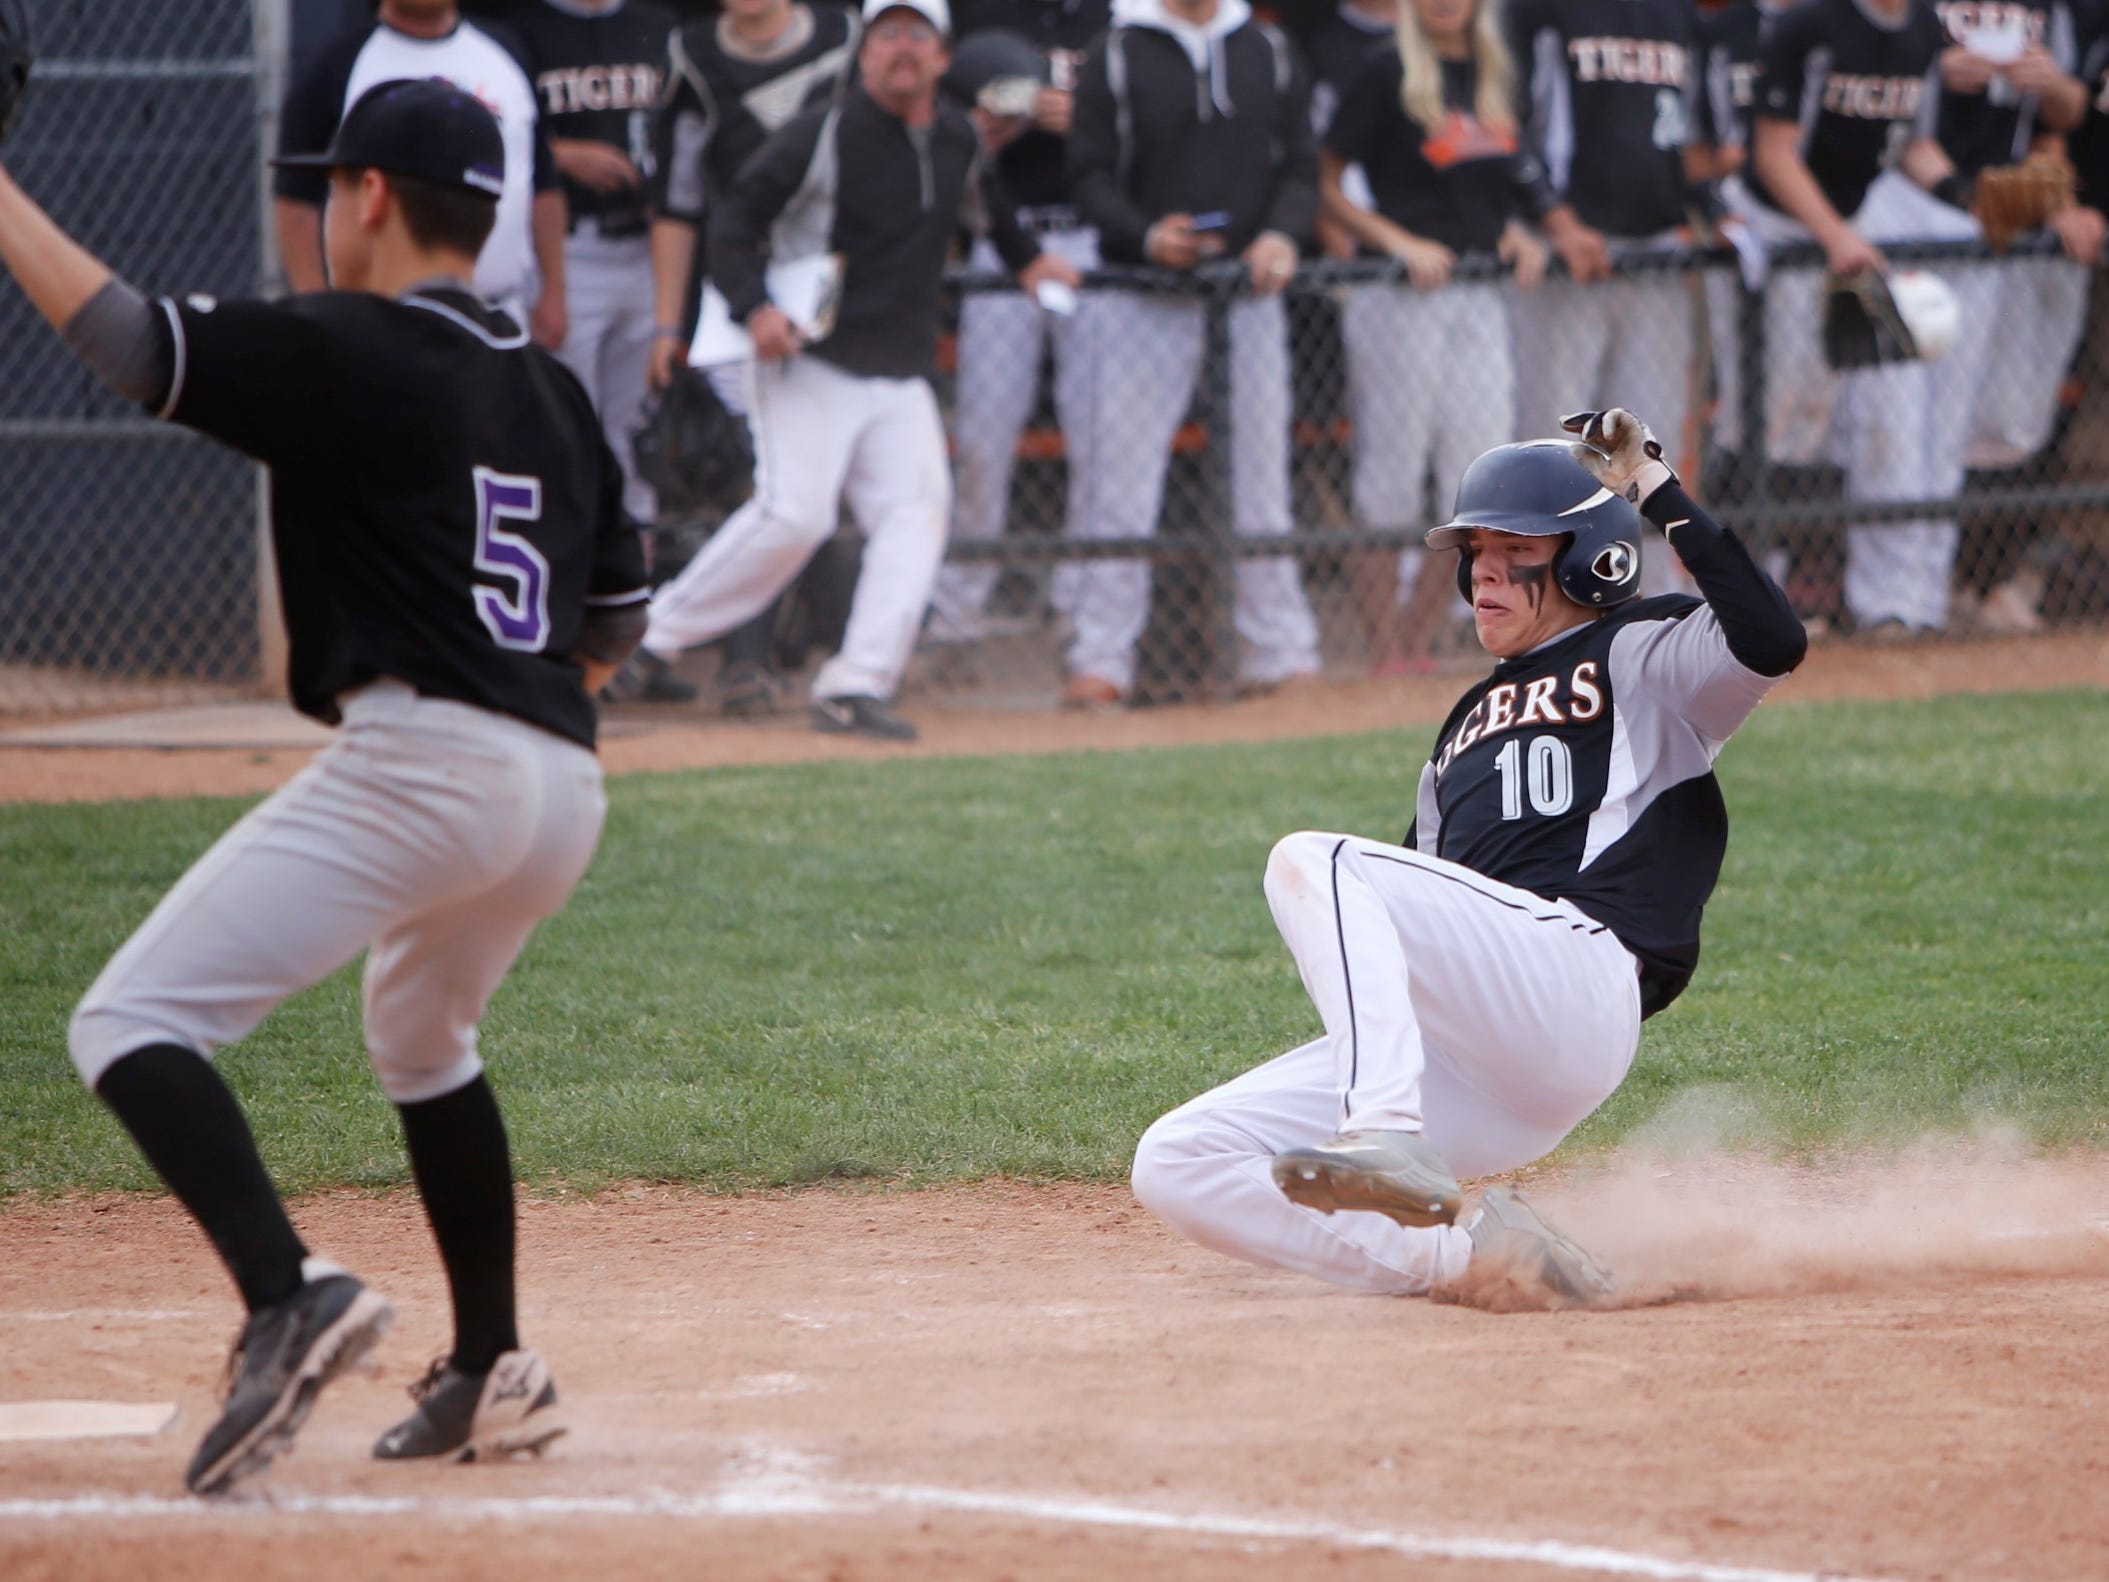 Aztec's Derek Jung scores a run off a wild pitch against Miyamura during Tuesday's District 1-4A opener at AHS.